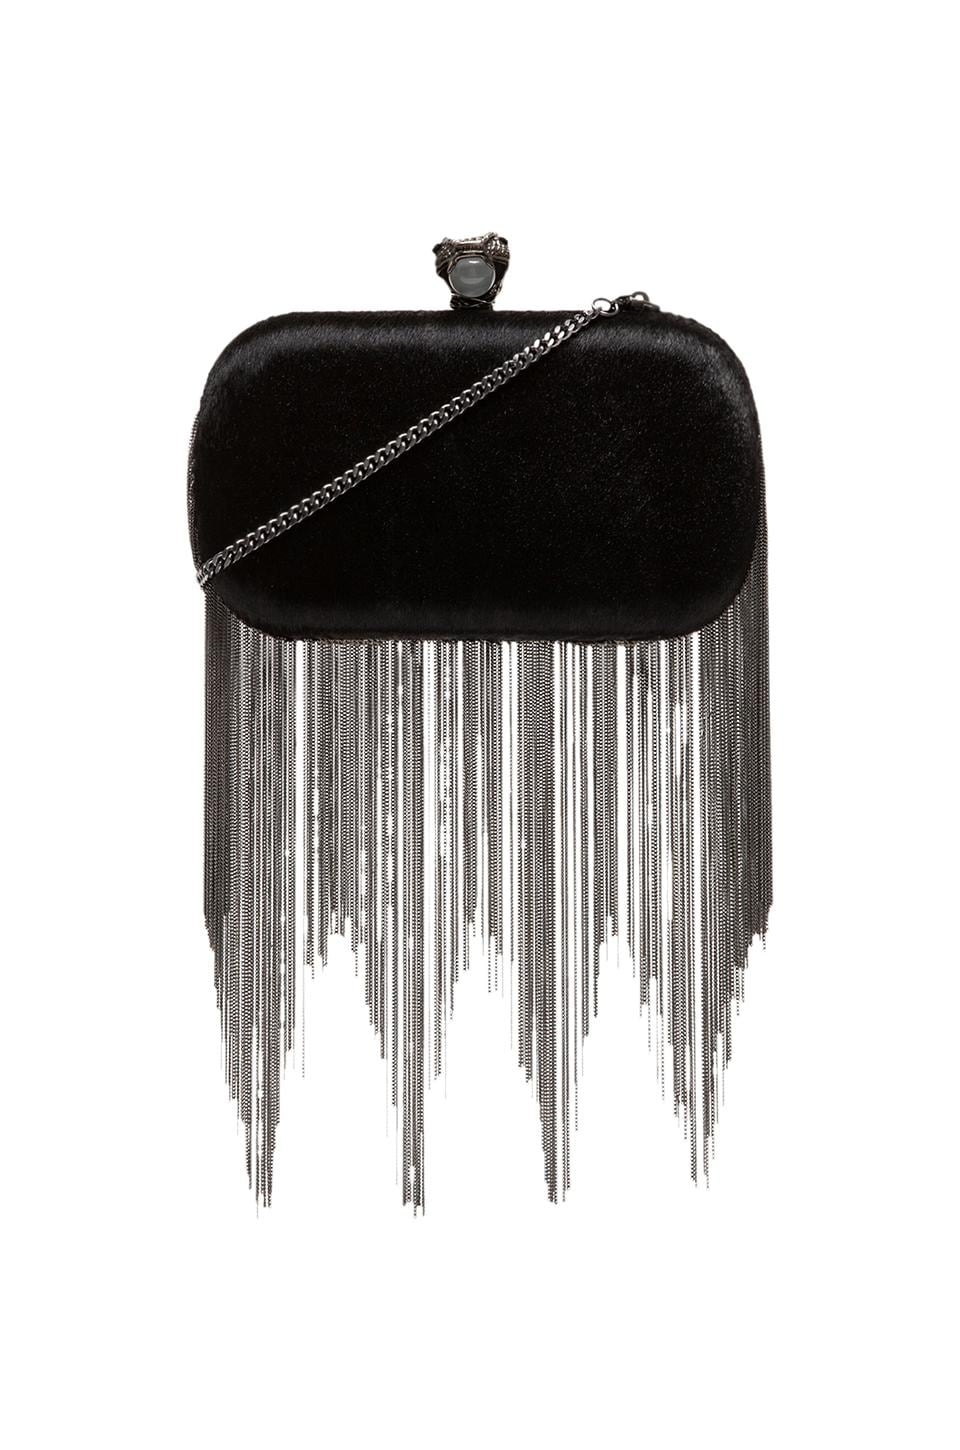 House of Harlow 1960 House of Harlow Jude Clutch in Bordeaux Haircalf